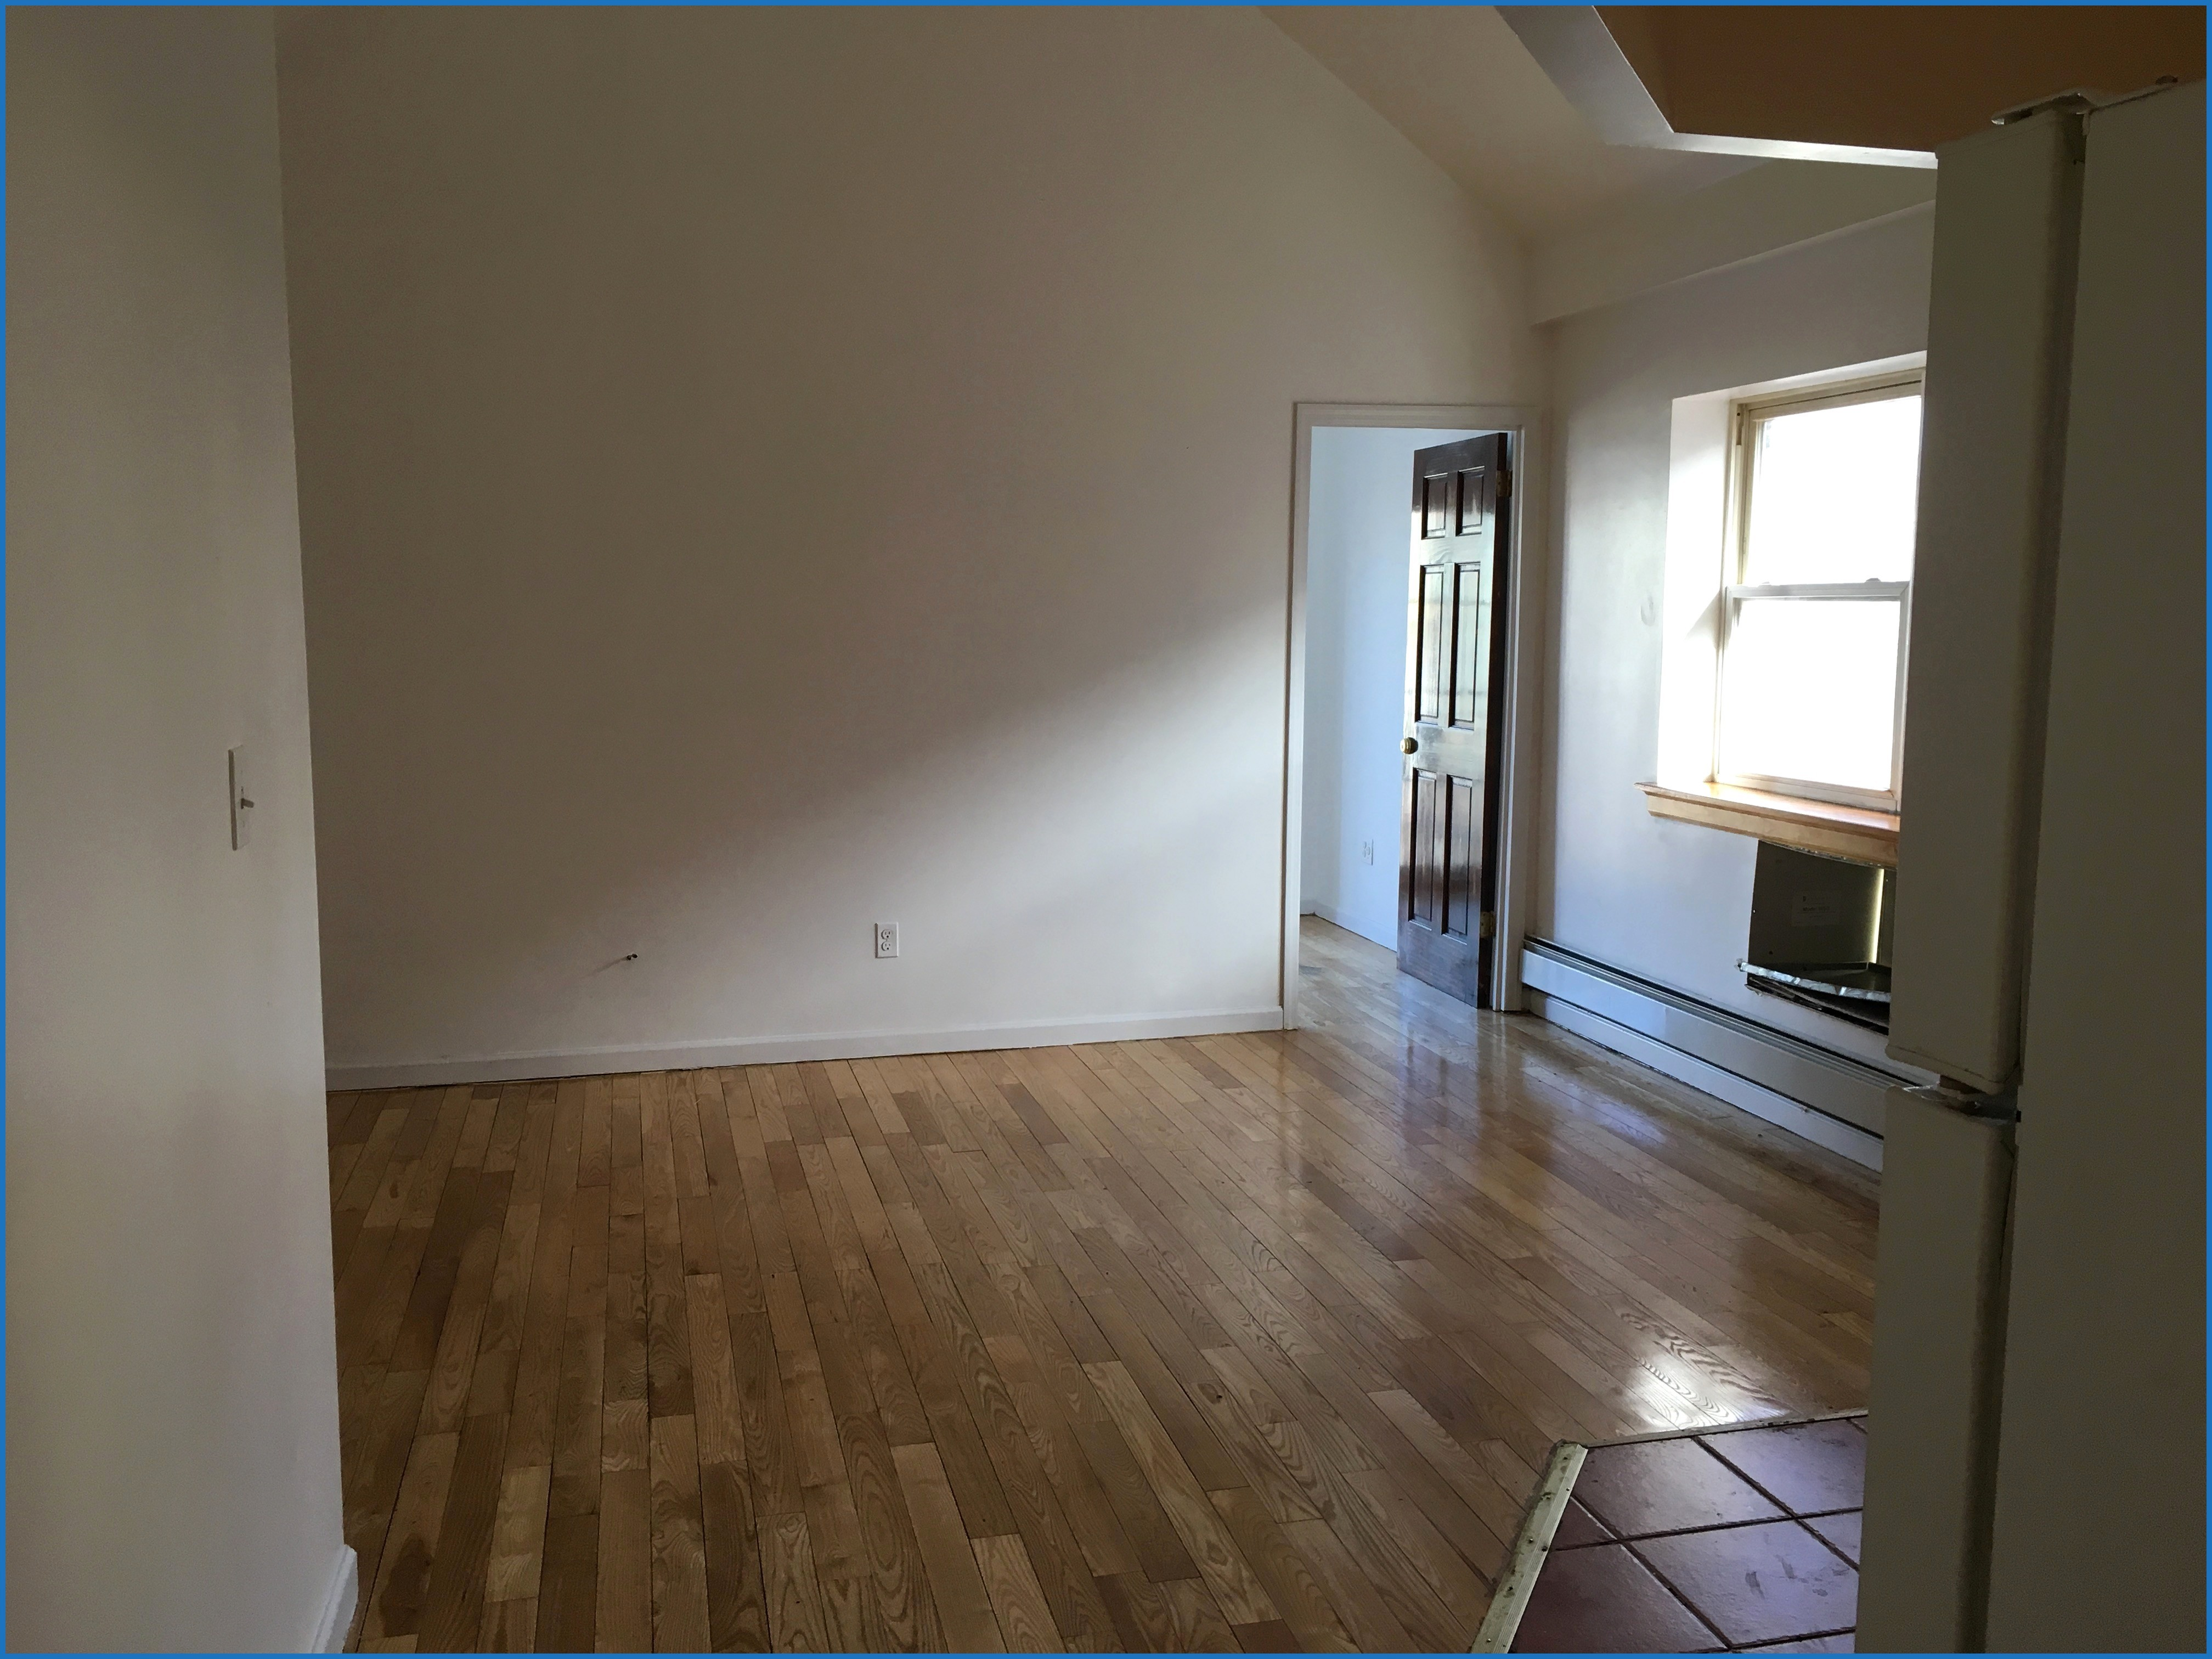 Rooms for Rent In the Bronx with Private Bathroom Best Of Best Pics Rooms for Rent In the Bronx with Private Bathroom Design